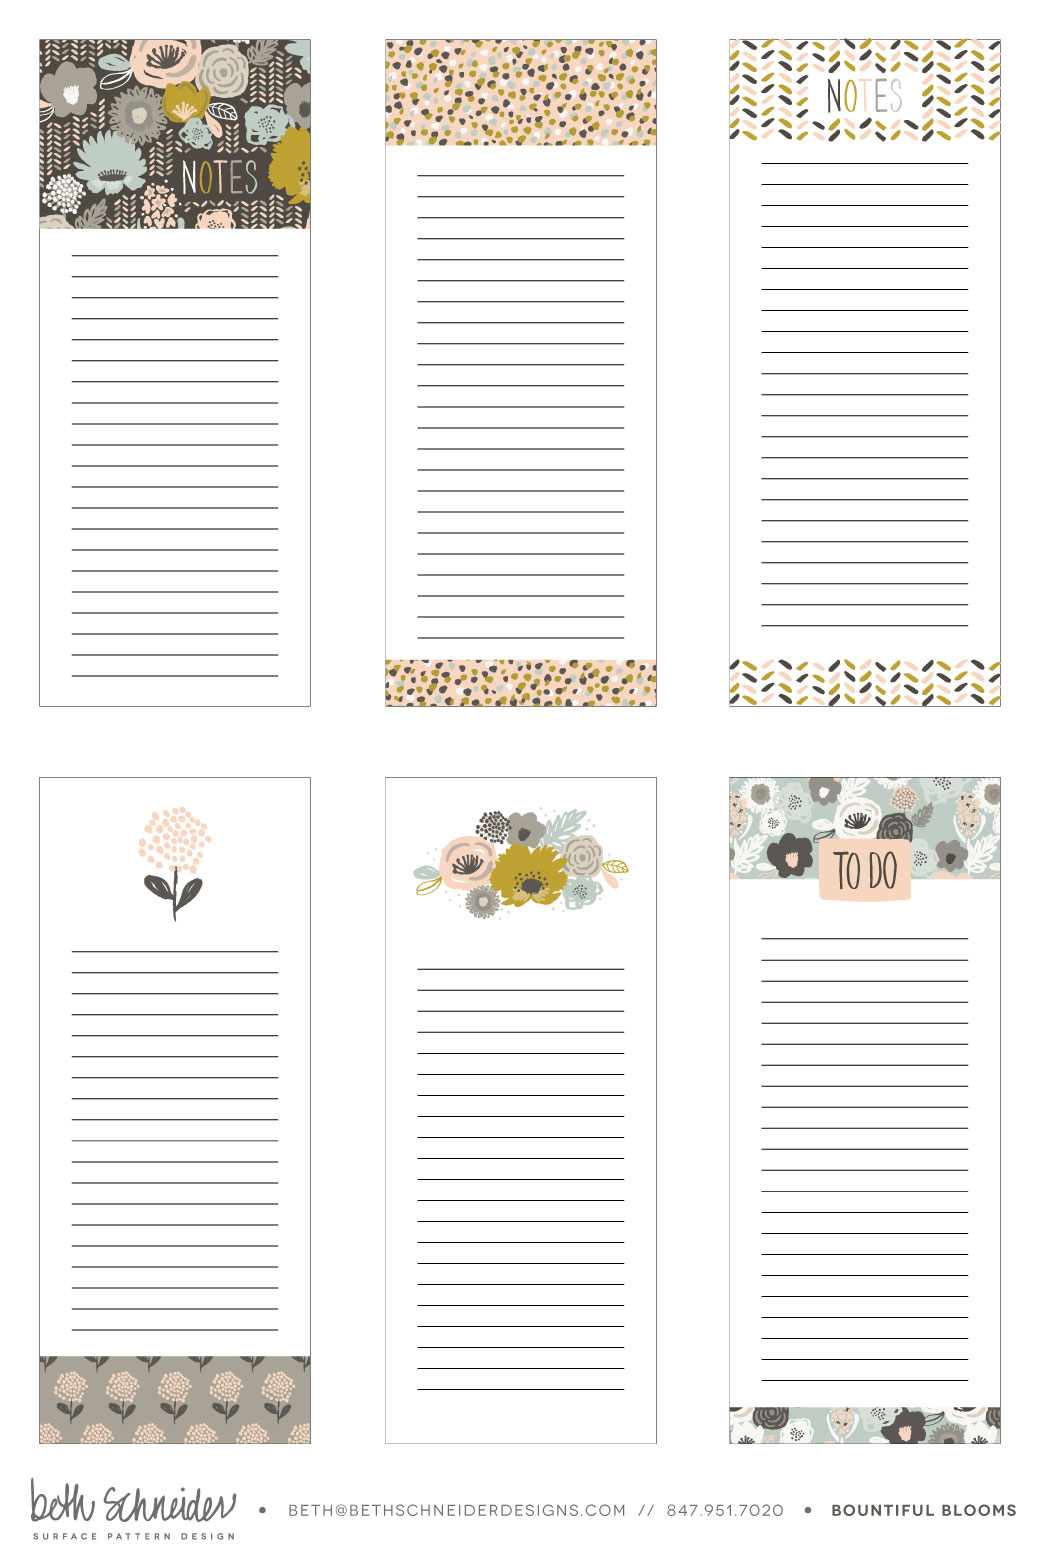 BethSchneider_BountifulBlooms_NOTEPADS.jpg